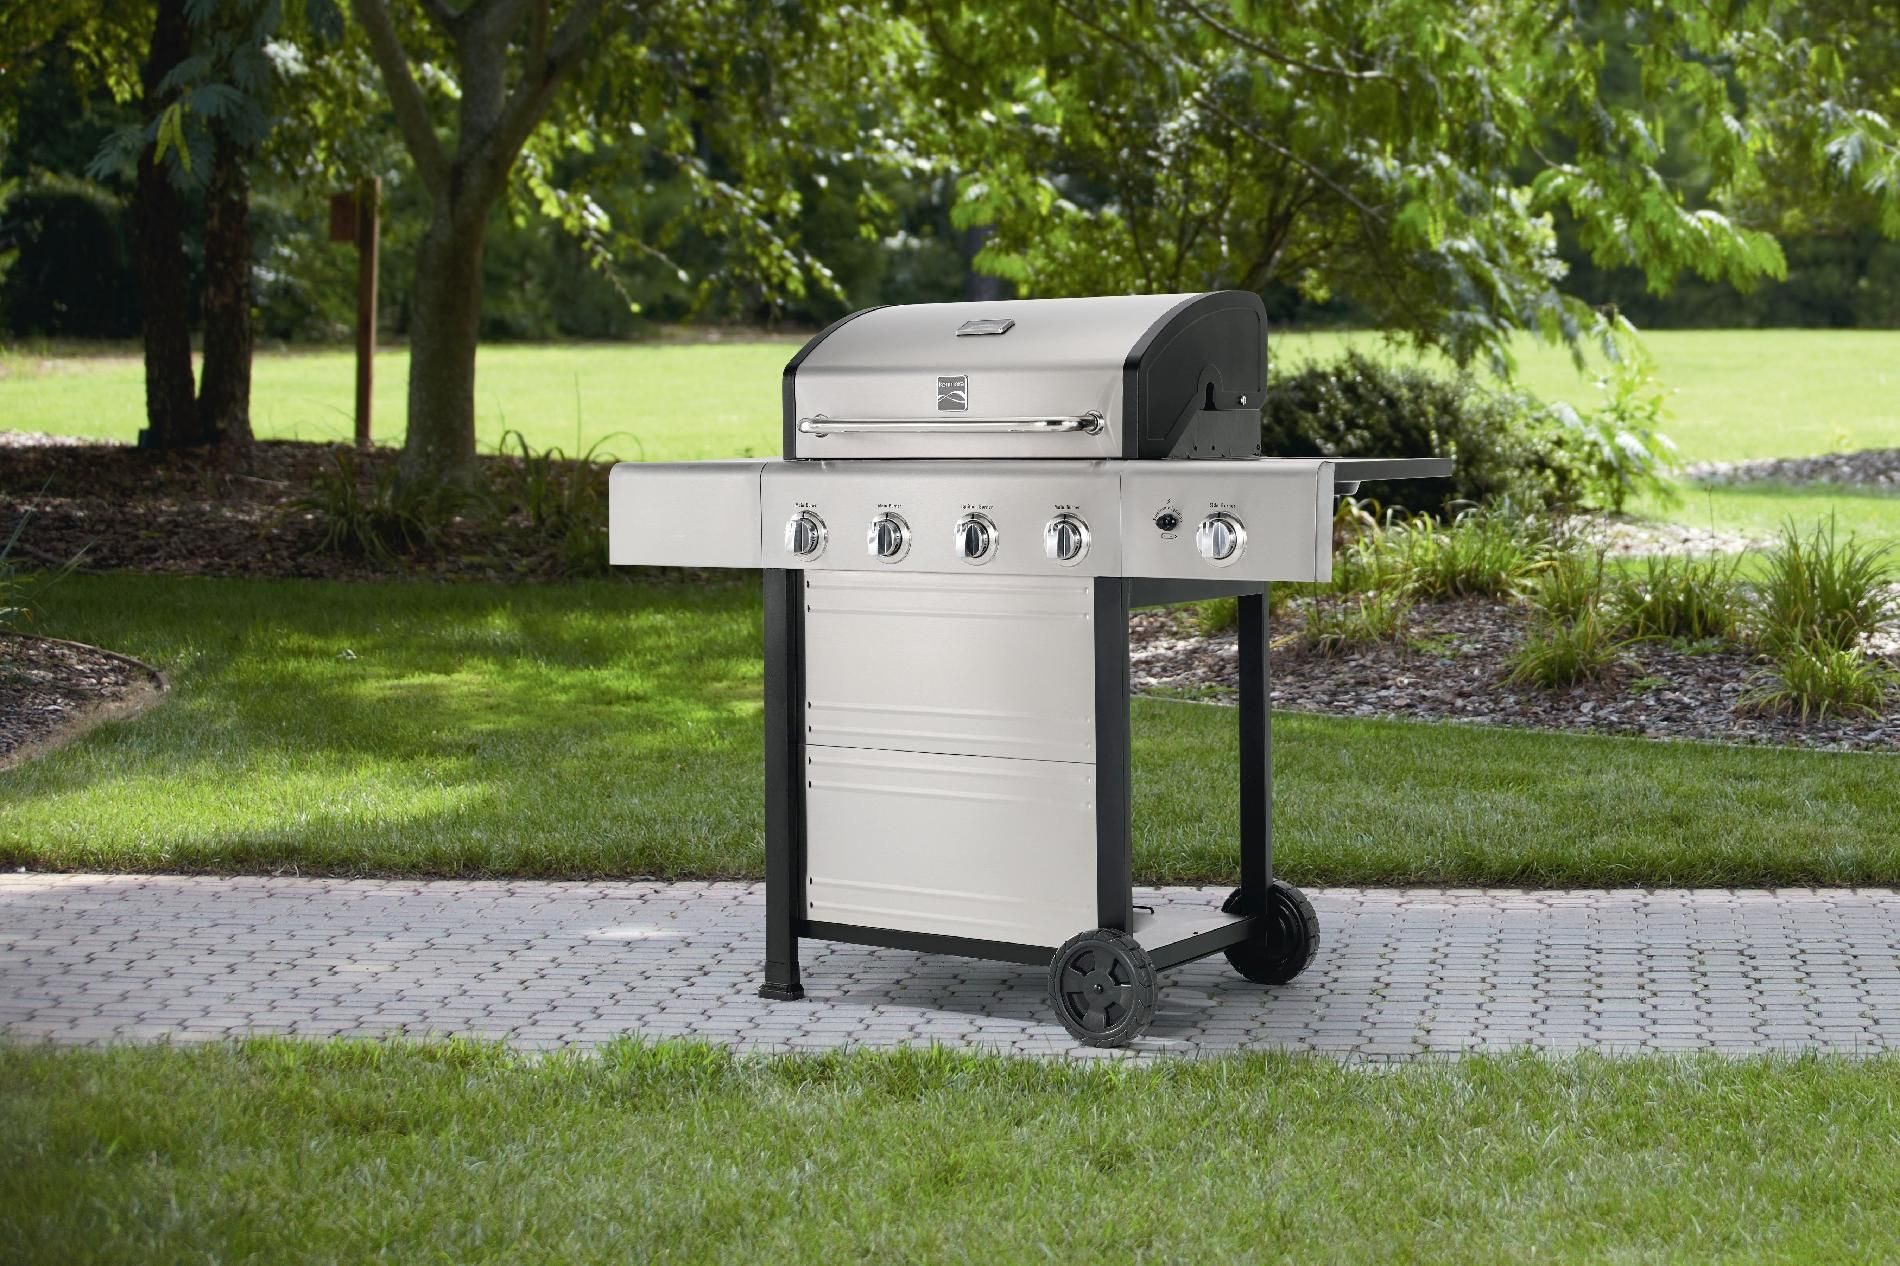 Unterstand Für Gasgrill : Kenmore 4 burner gas grill with stainless steel lid outdoor living